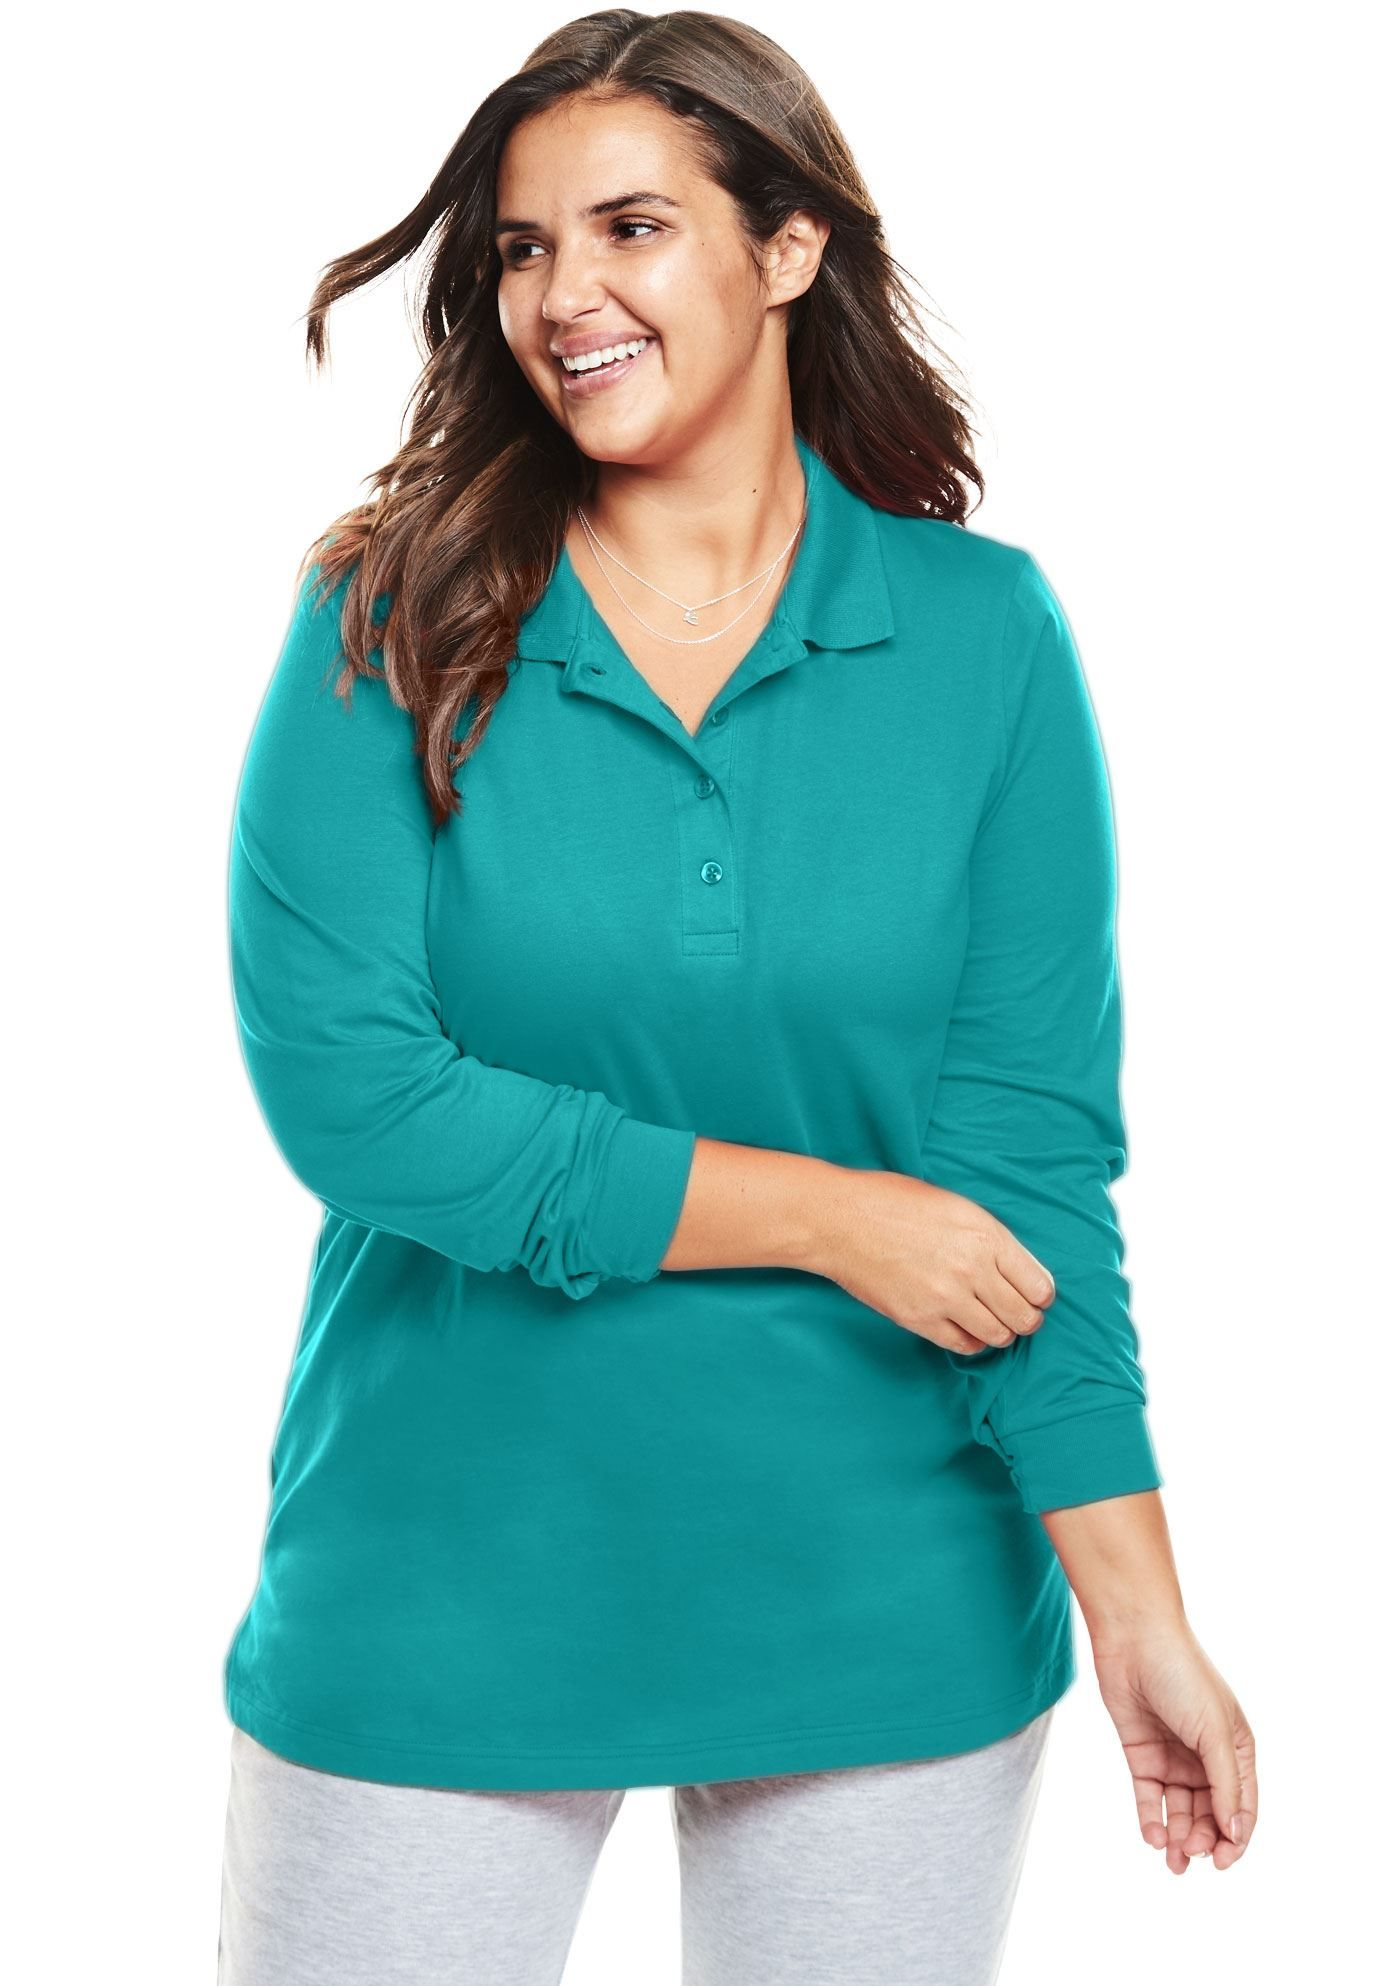 212c95e3 Perfect polo tunic with long sleeves - Women's Plus Size Clothing ...